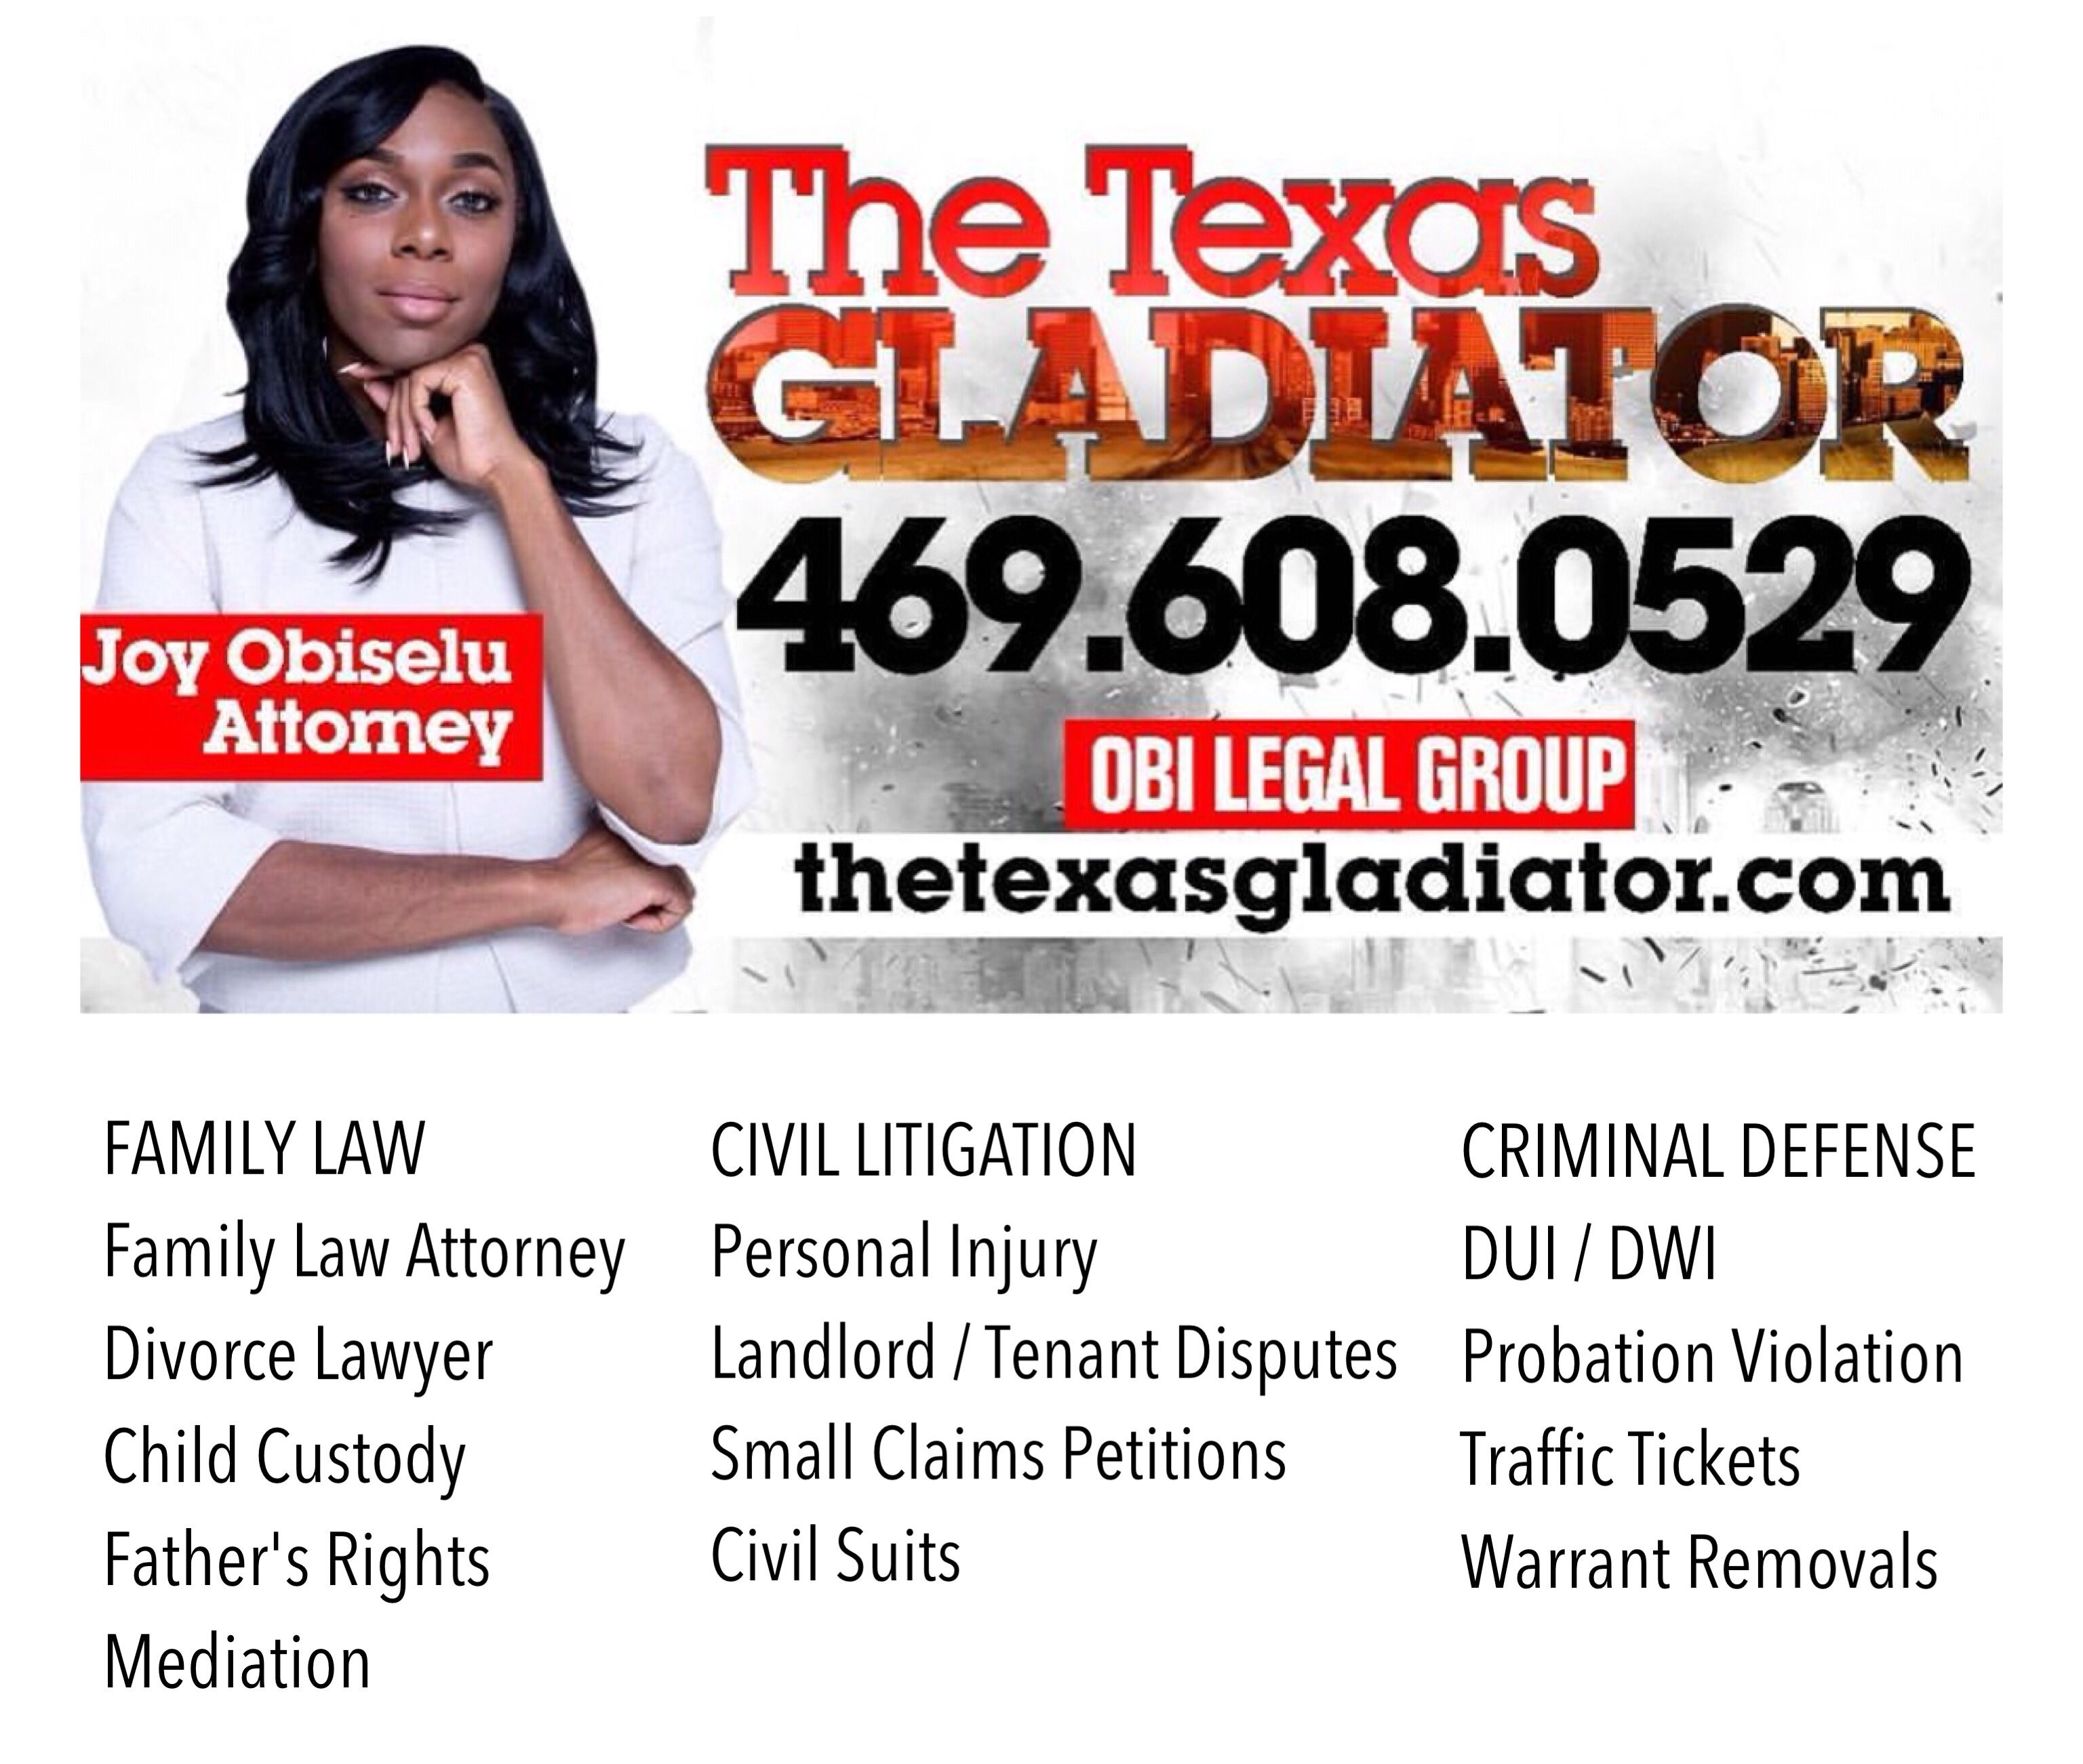 Lawyer Family Law Attorney Divorce Lawyers Family Law